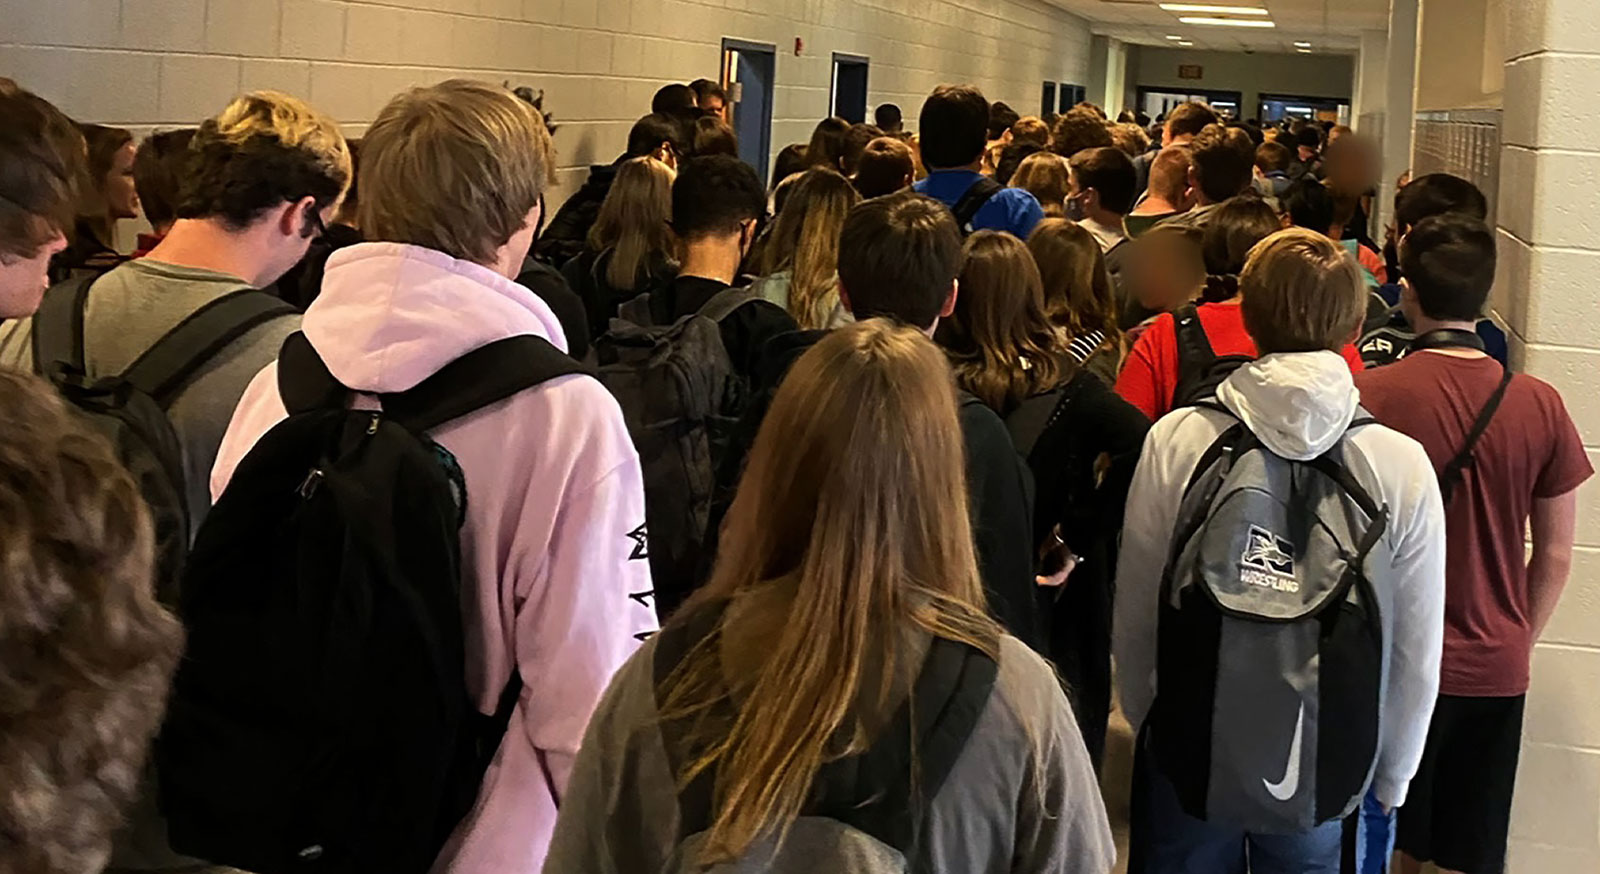 Students walk down a crowded hallway at North Paulding High School.